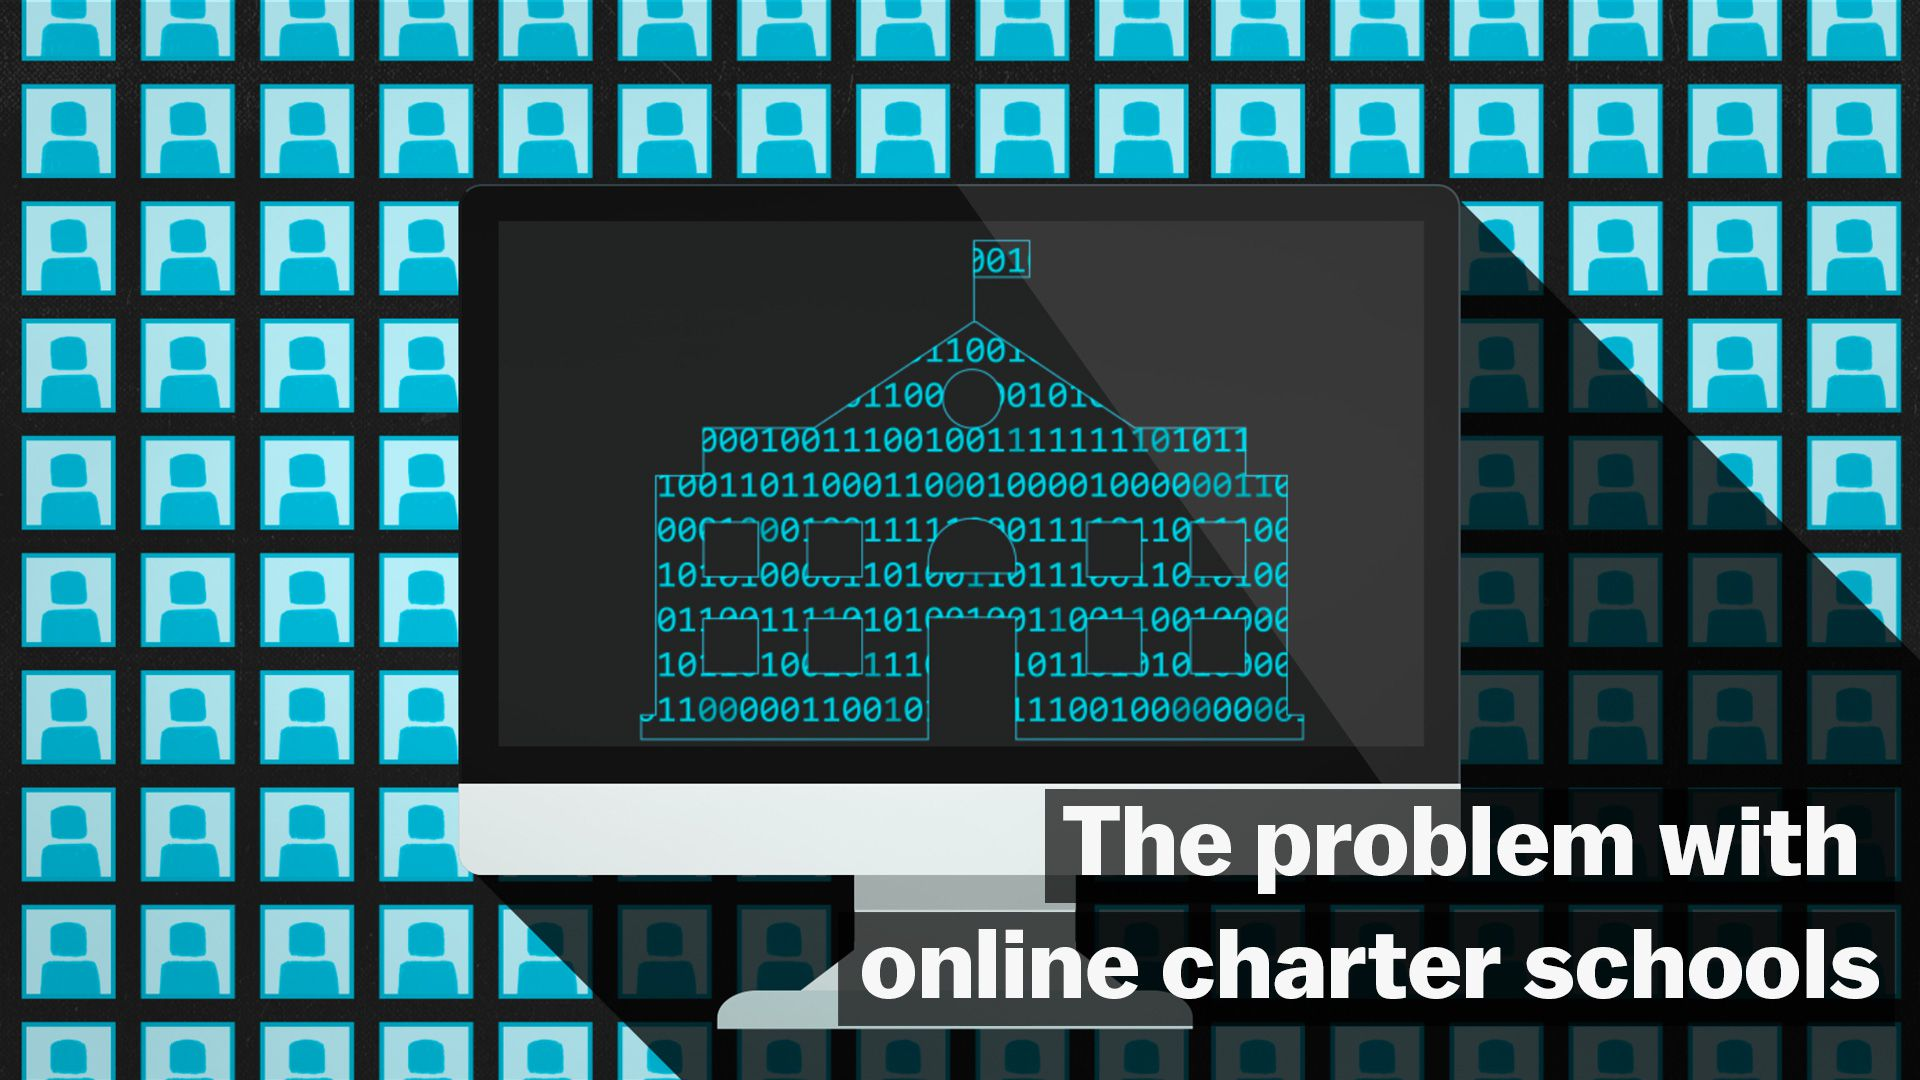 The problem with online charter schools - Vox